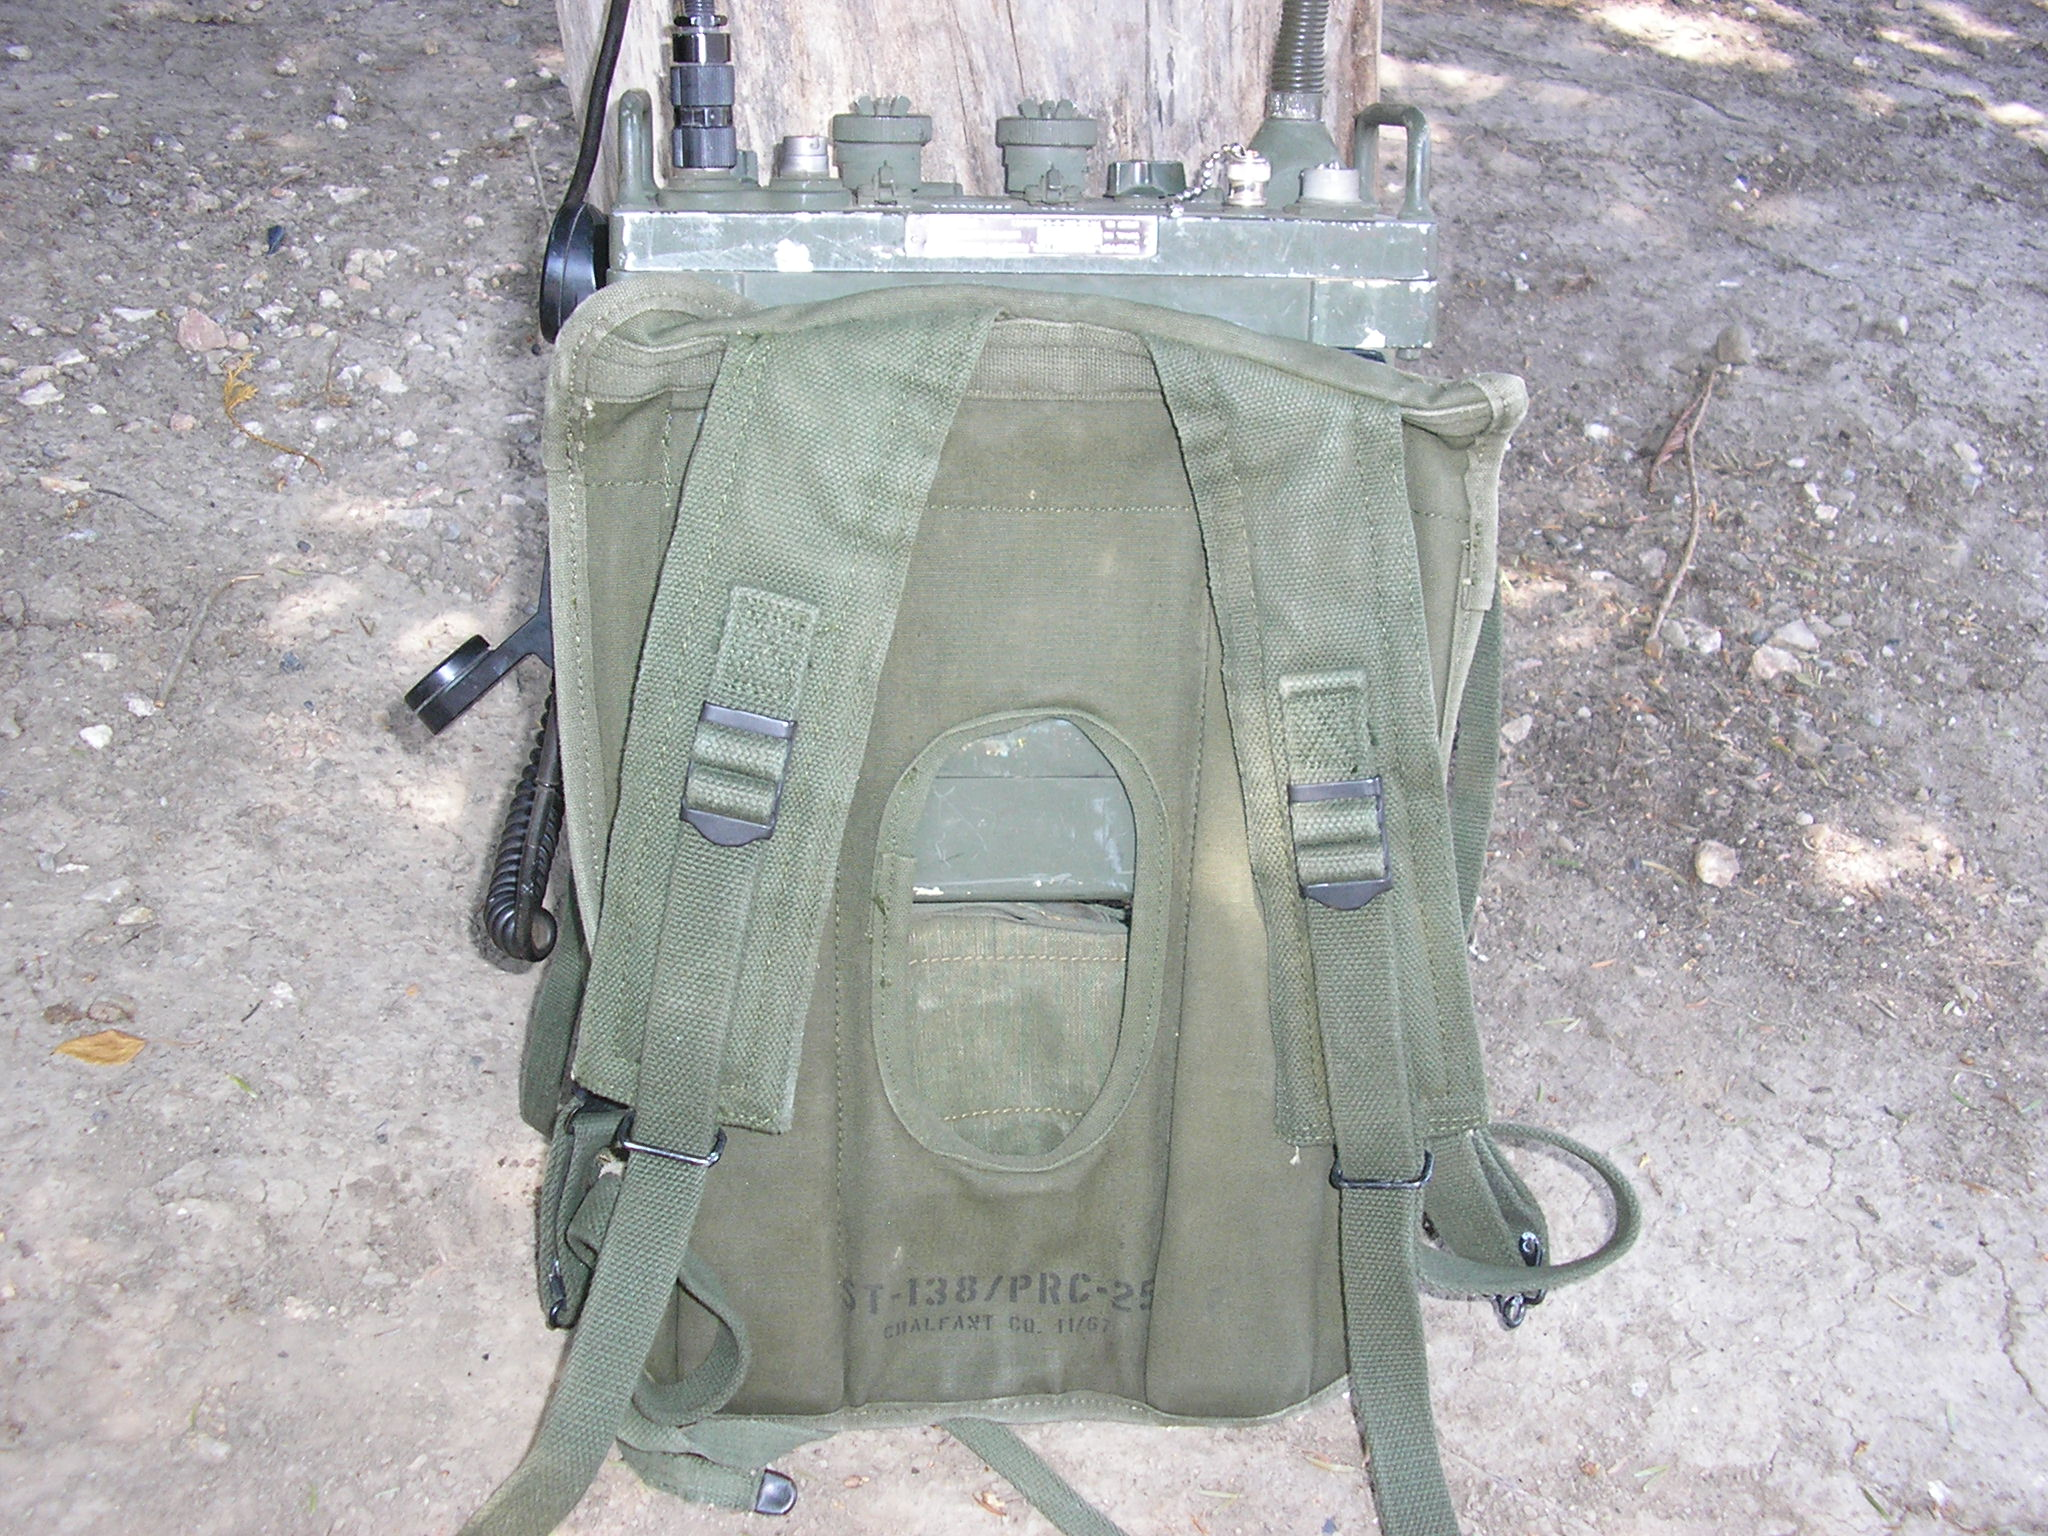 ST-138 Carrying Harness